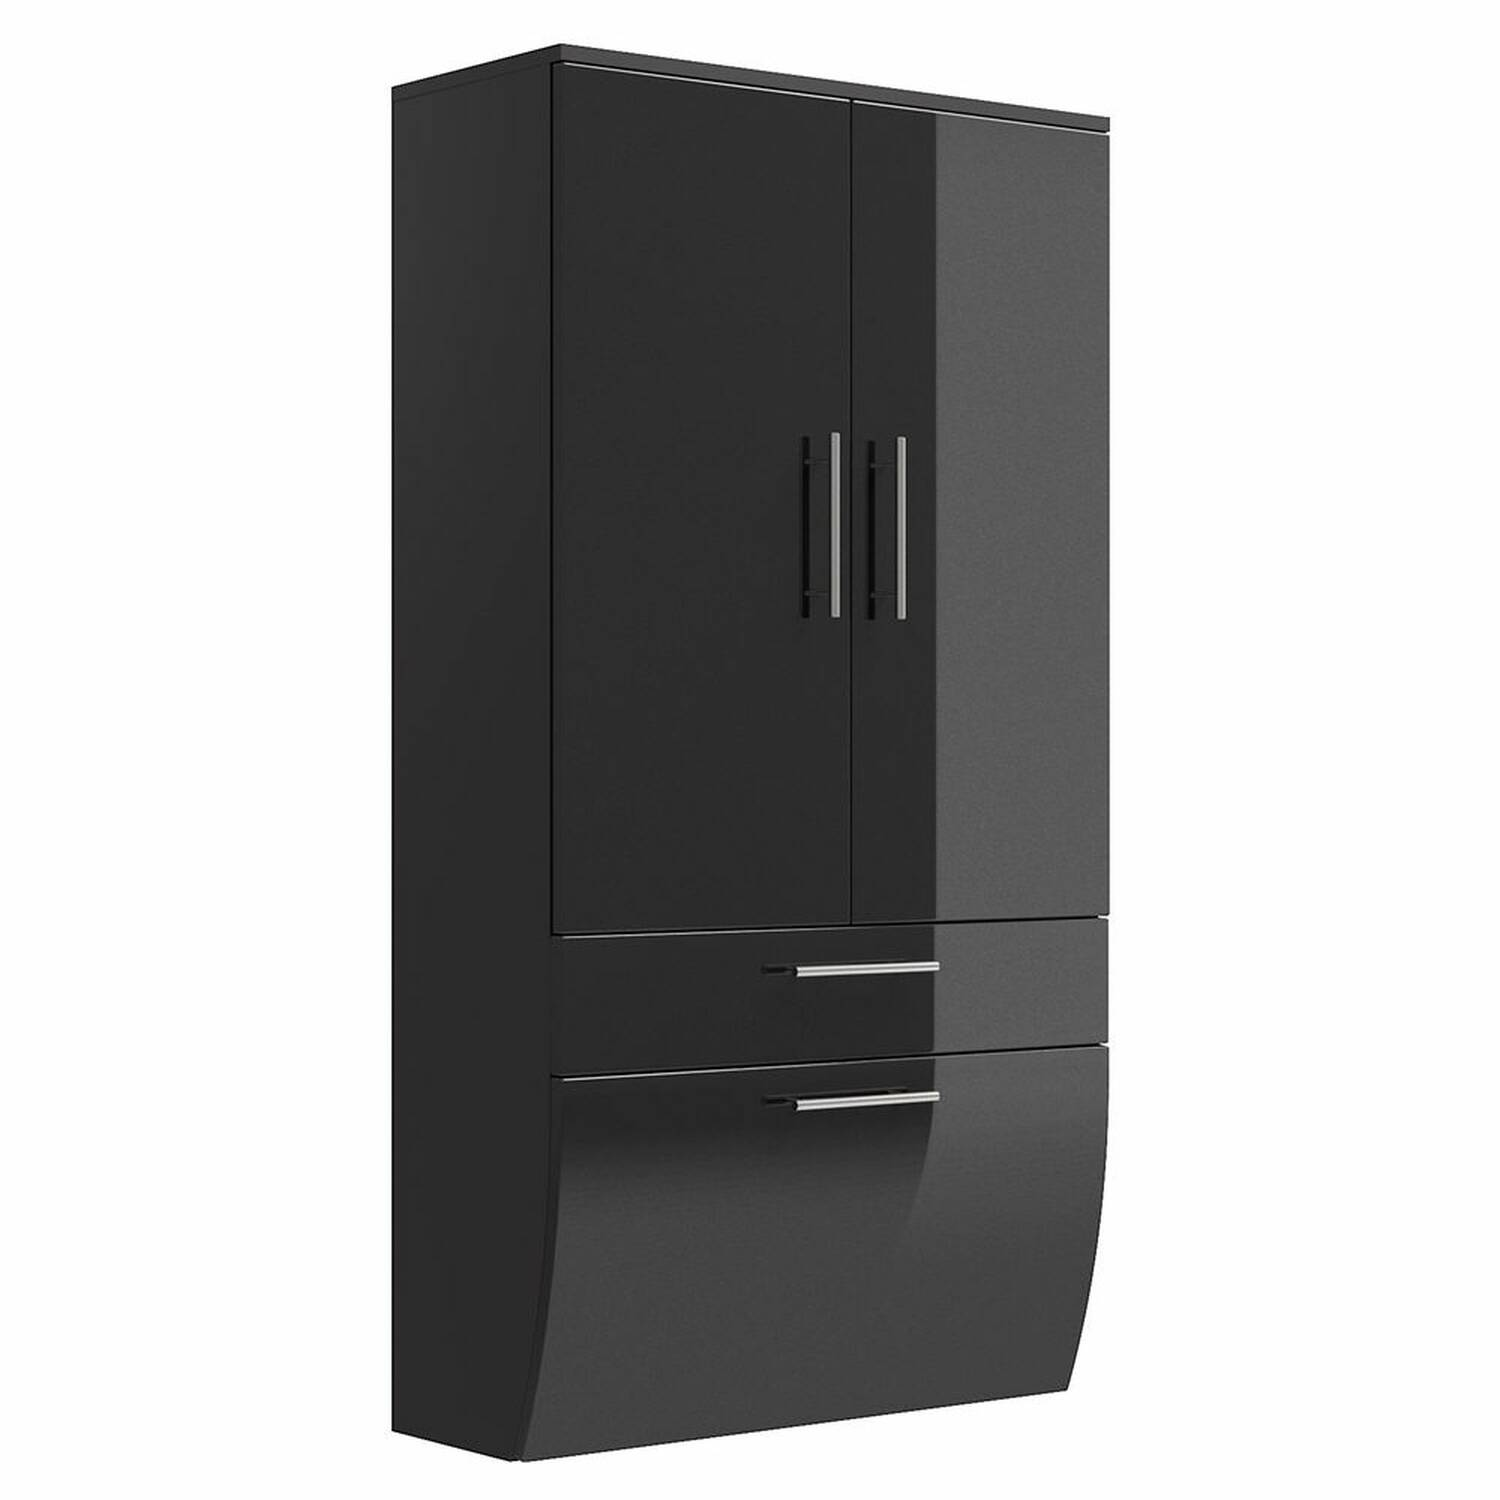 hochschrank breit talona 02 hochglanz anthrazit 70cm. Black Bedroom Furniture Sets. Home Design Ideas